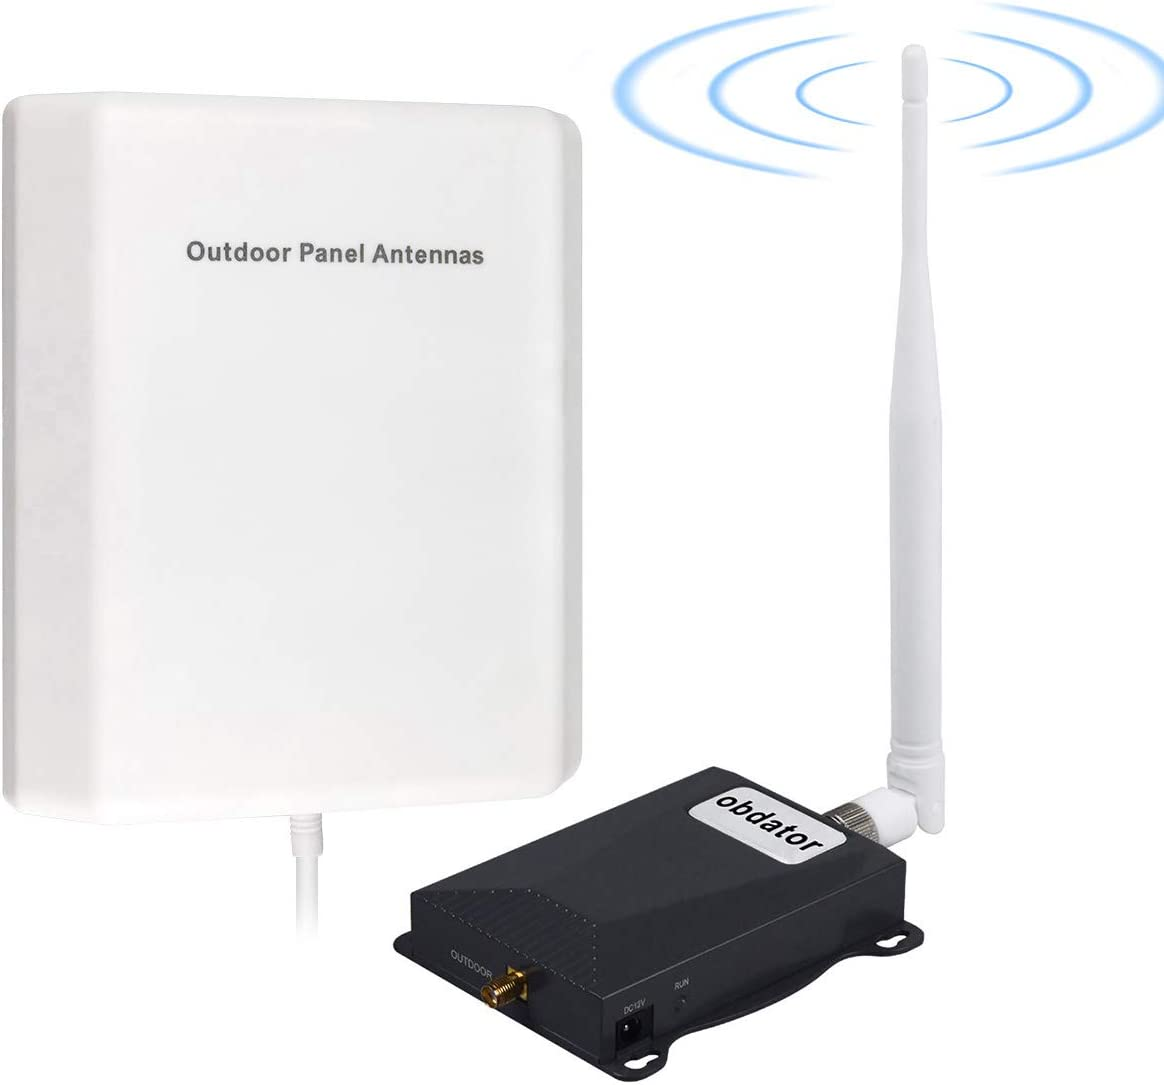 Cell Phone Signal Booster AT&T Signal Booster 4G LTE 5G Cell Phone Booster ATT T-Mobile Band12/17 Cell Network Extenders Signal Amplifier ATT Cellular Signal Booster for Home Boost Voice + Data